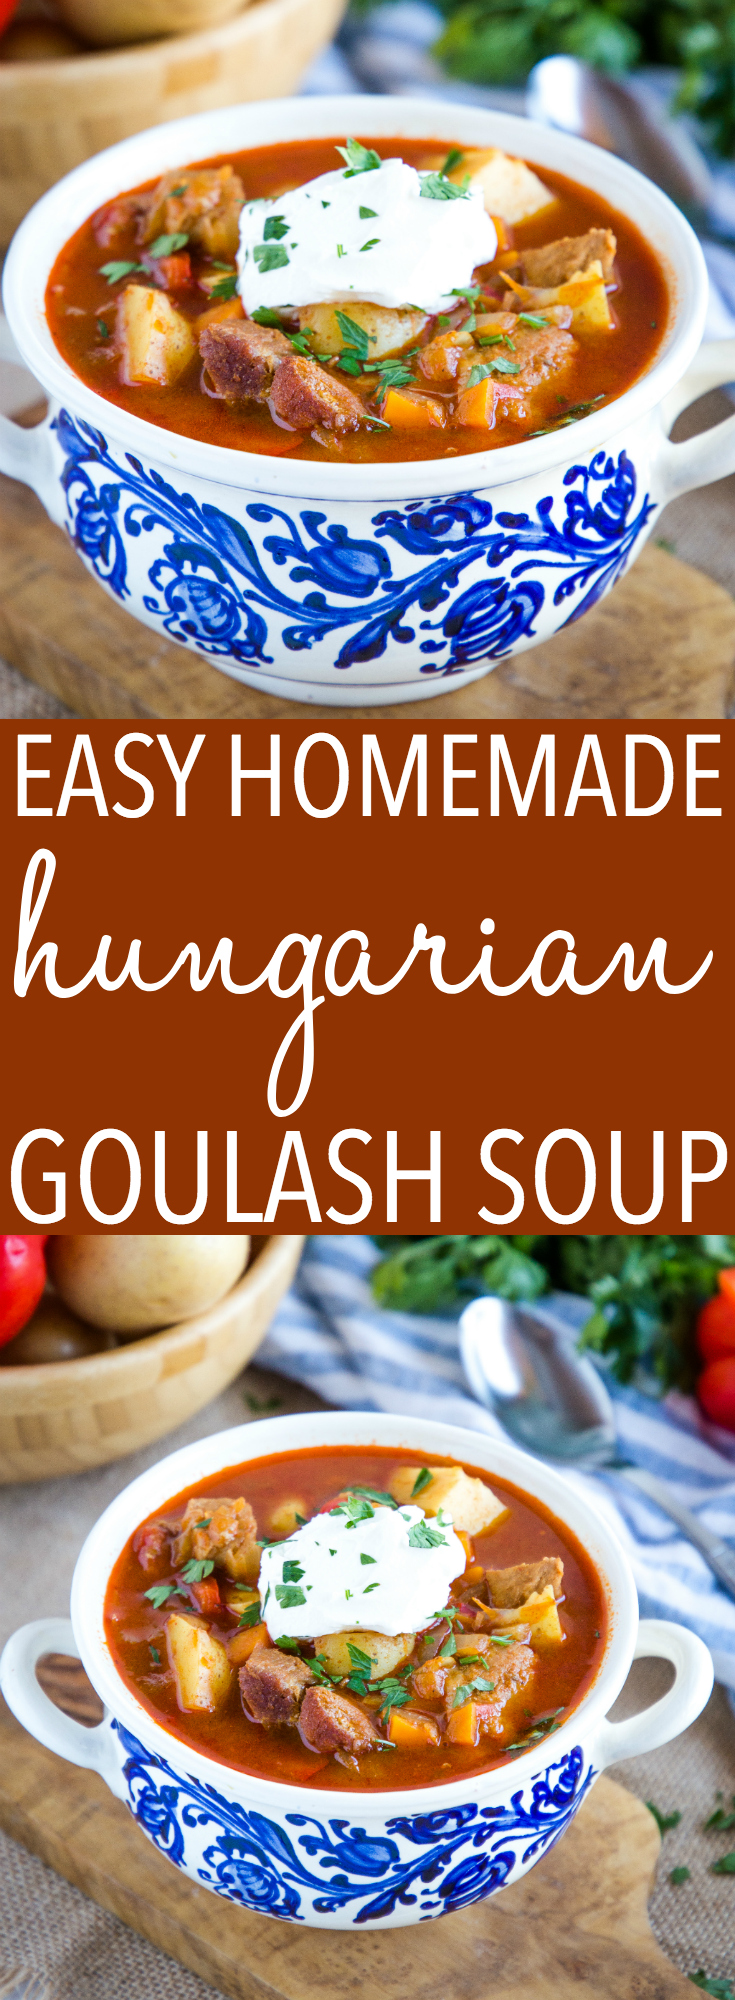 This Homemade Hungarian Goulash Soup recipe is the perfect classic cold-weather soup that's hearty, full of flavour, and so easy to make! Recipe from thebusybaker.ca! #homemade #hungarian #goulash #soup #stew #mealideas #mealprep #pork #easterneuropean #recipe #potatosoup via @busybakerblog